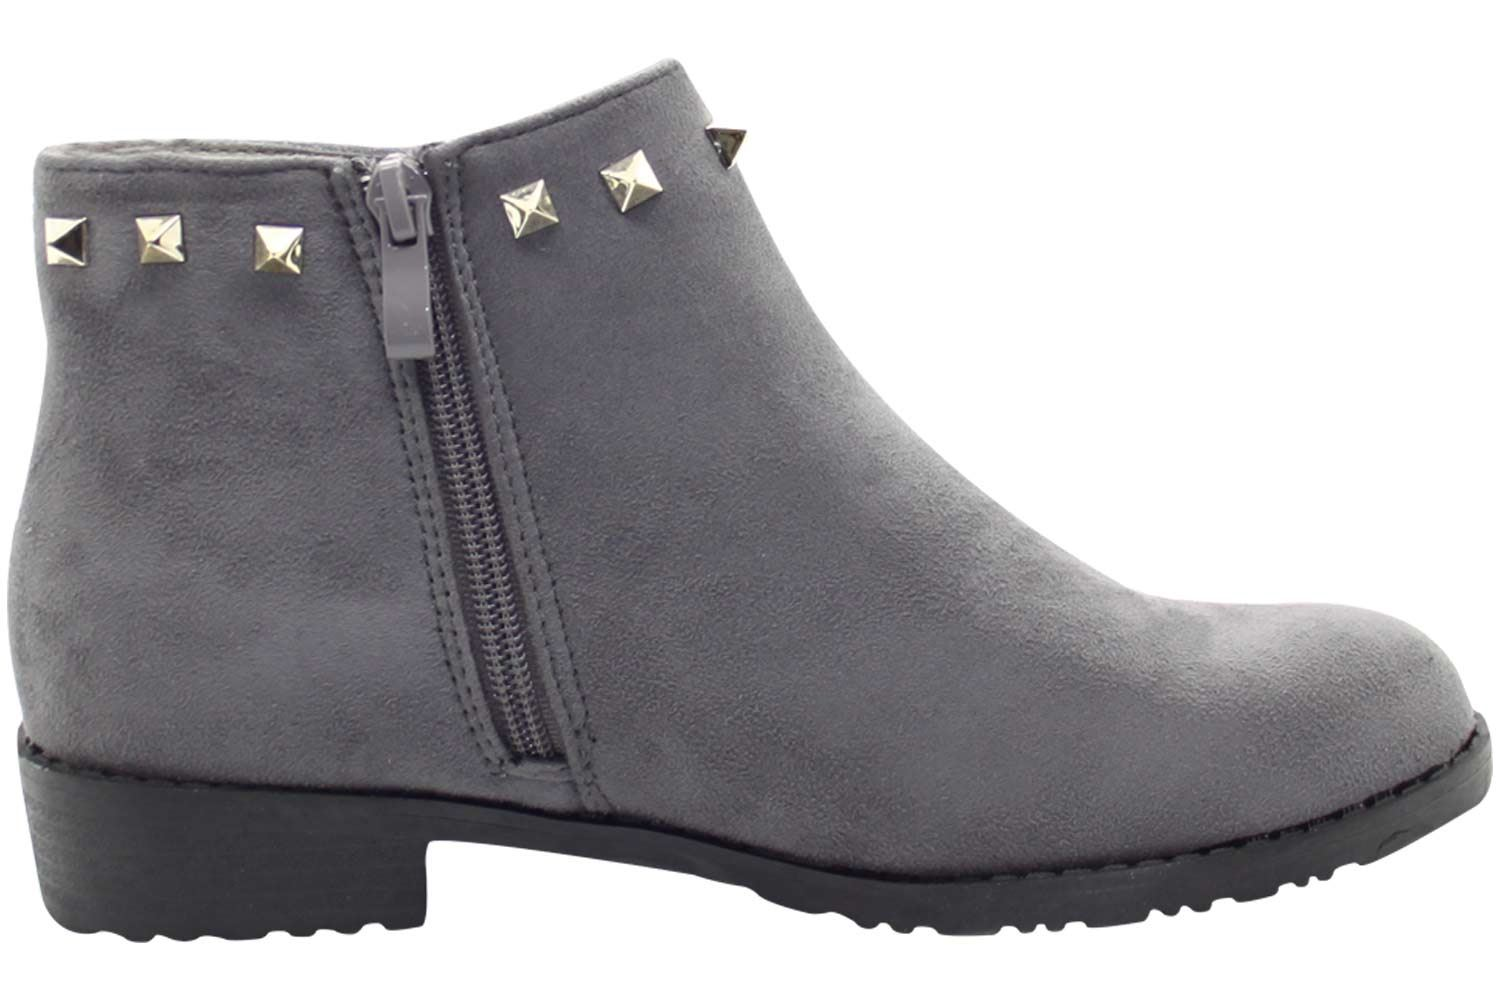 New-Women-Chelsea-Ankle-Boots-Winter-Block-Heel-Ladies-Biker-Style-Boots thumbnail 25